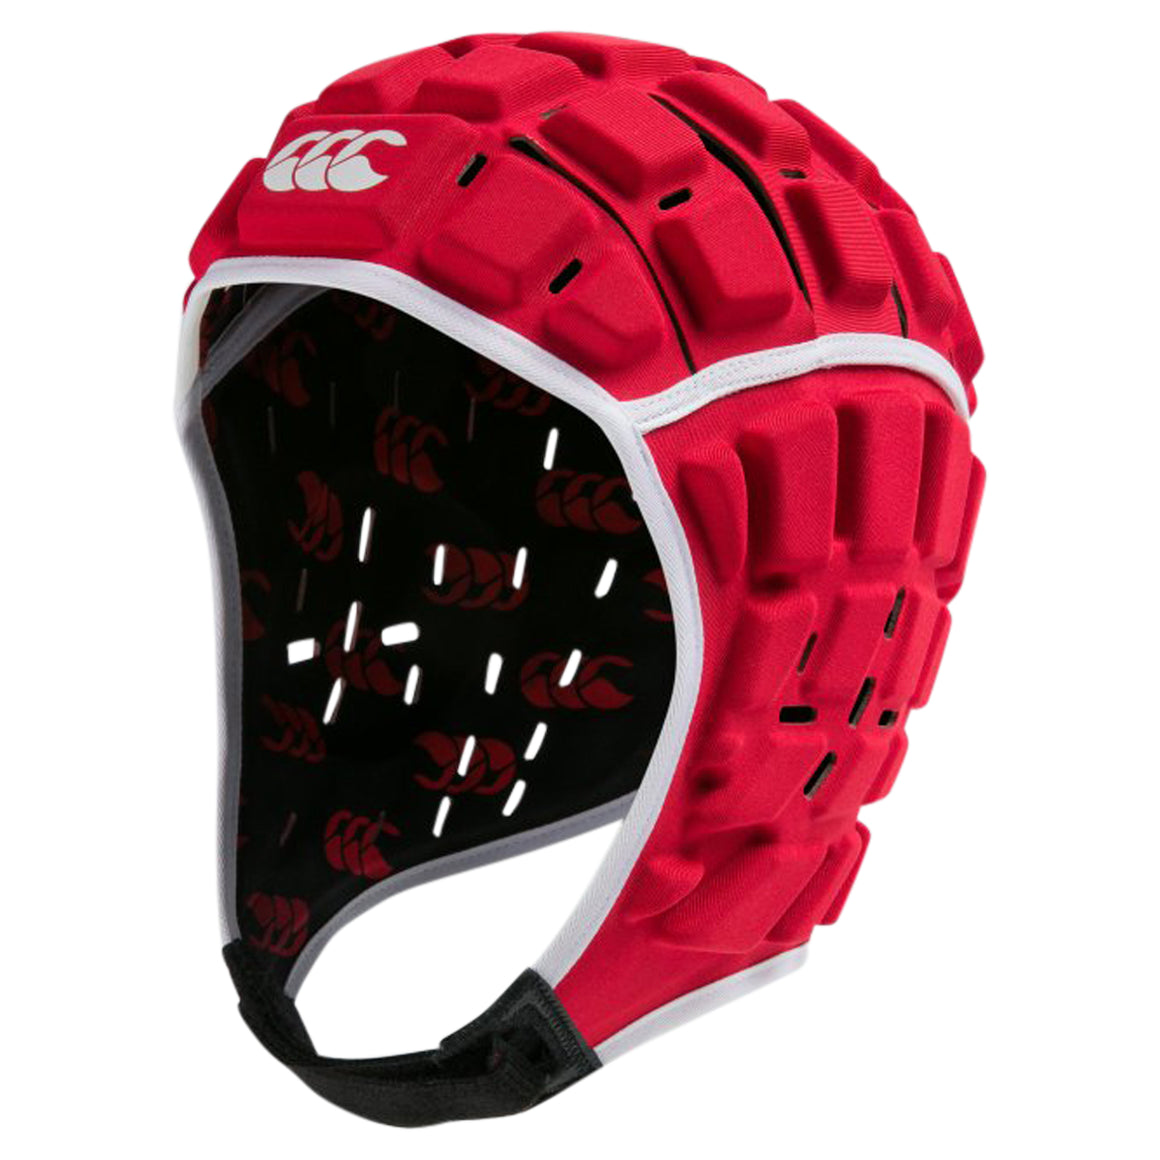 Reinforcer Headguard for Men in Red